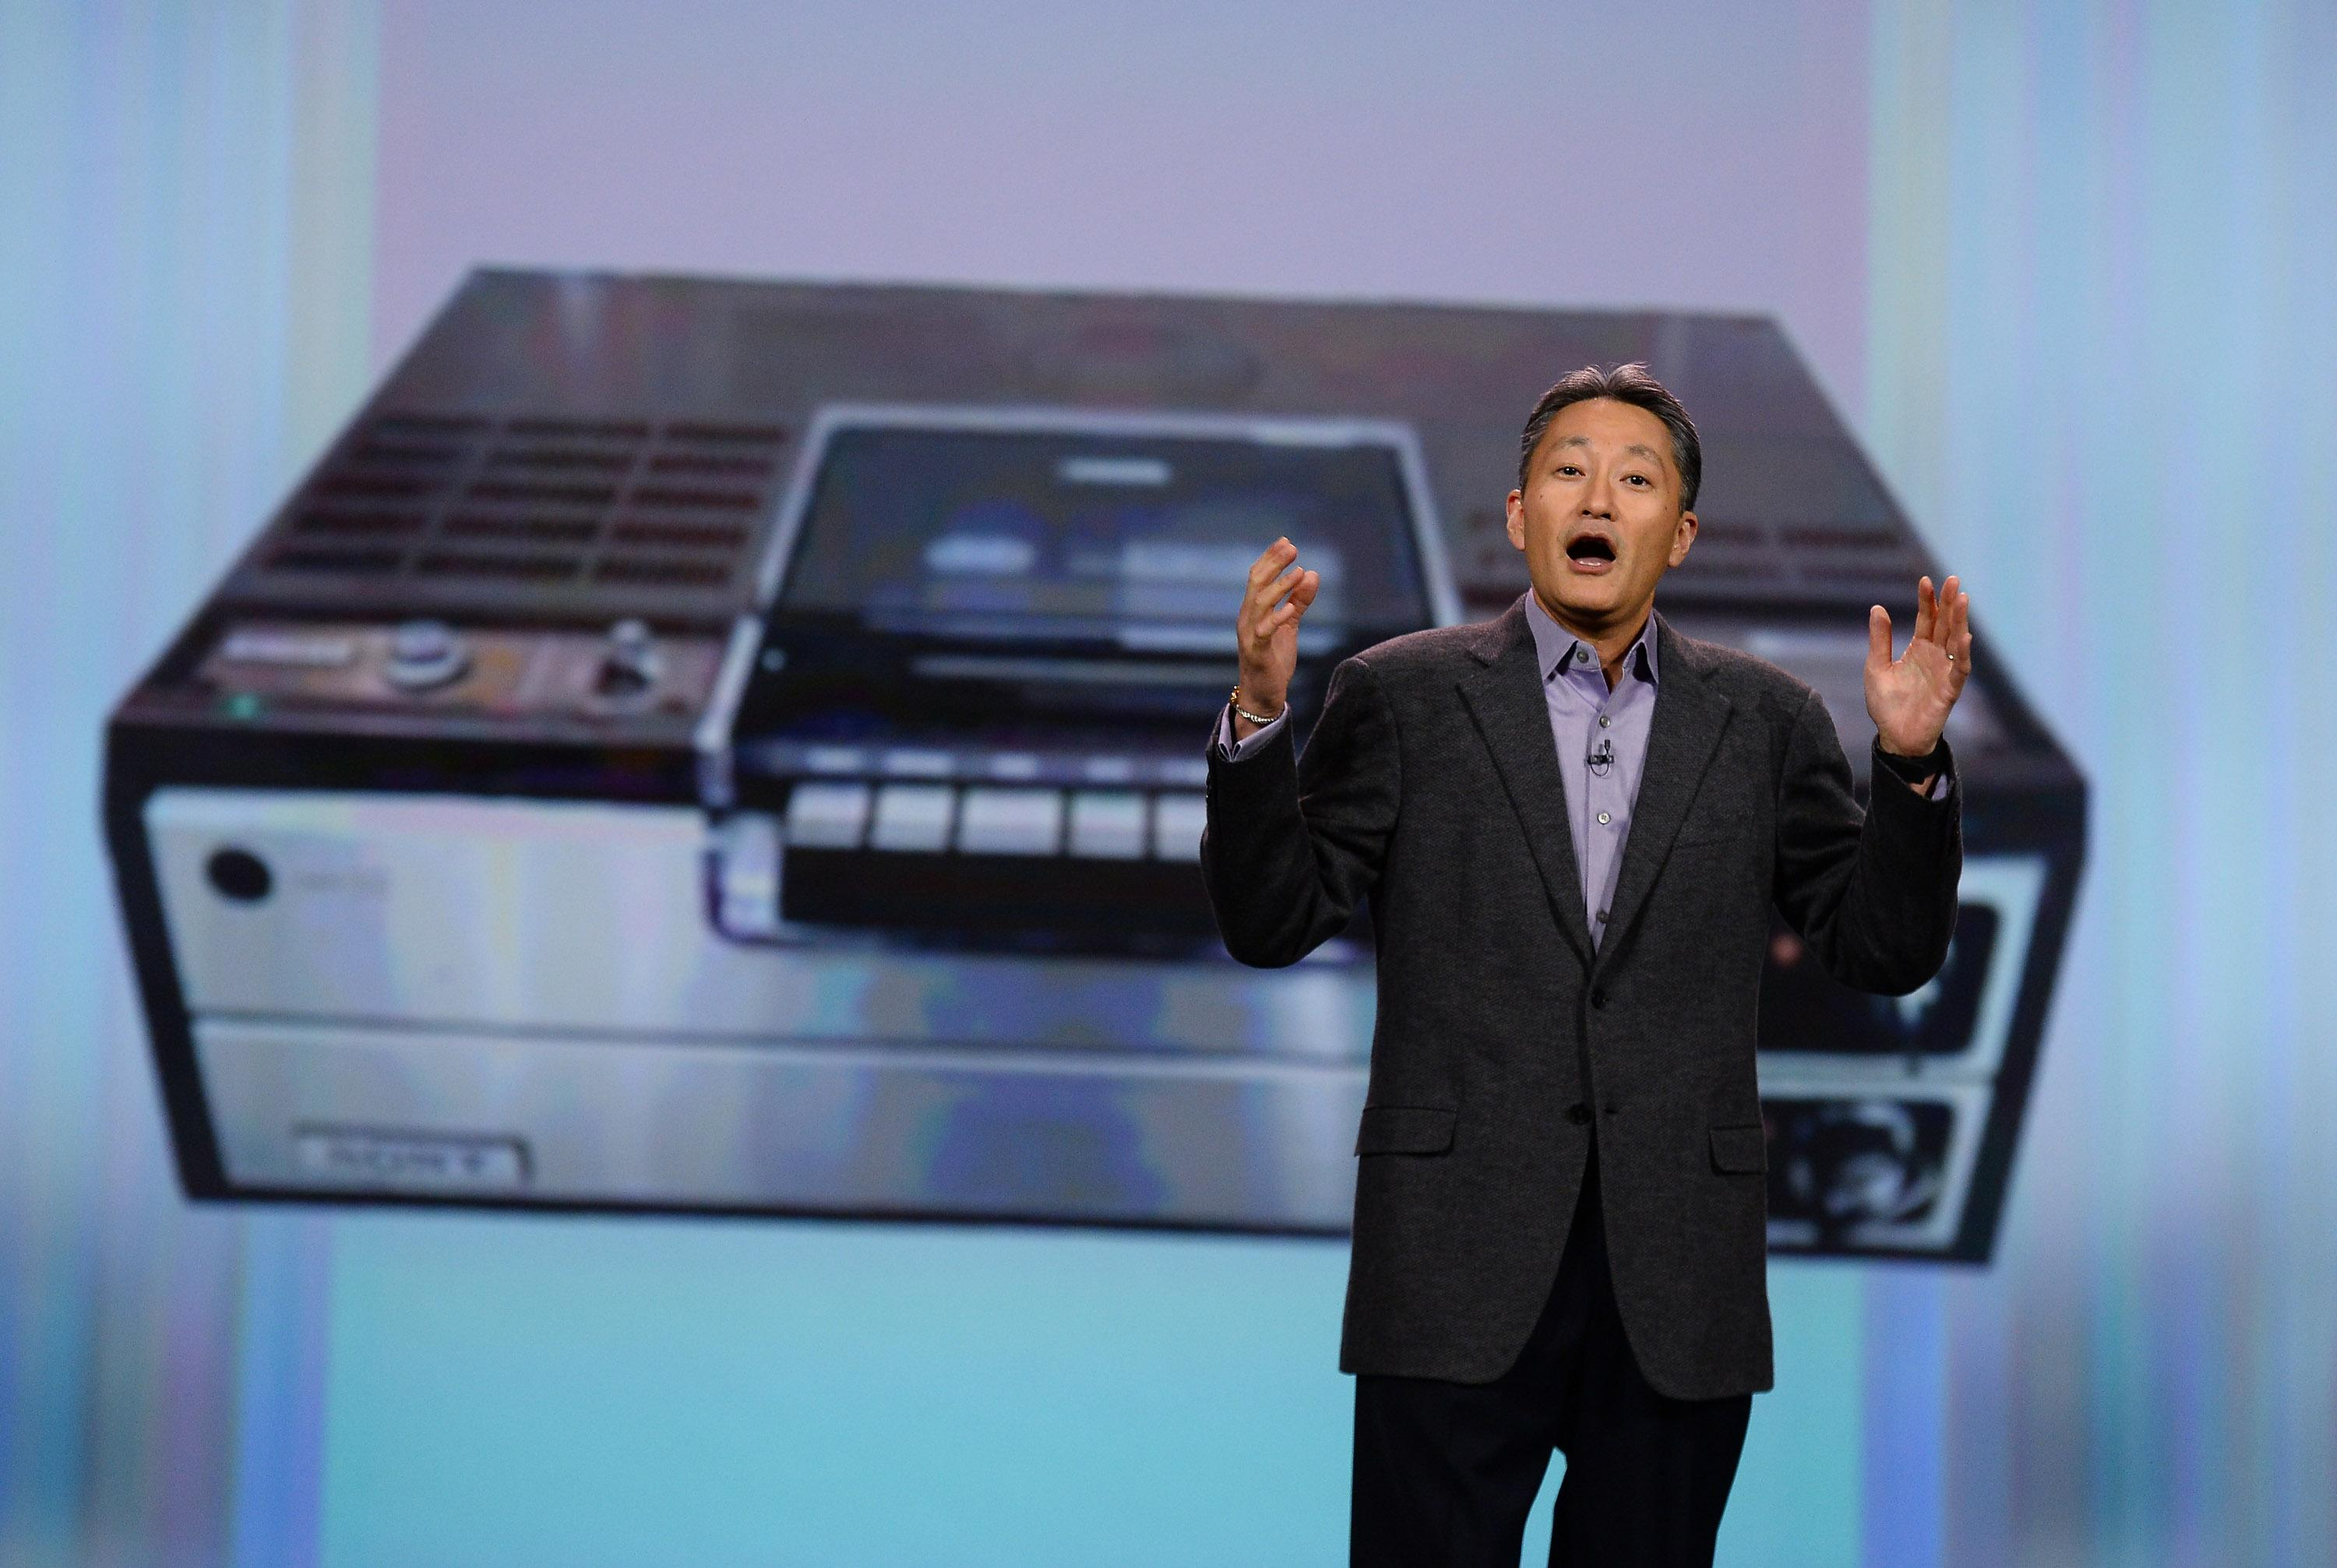 Sony Betamax was one of the worst failed products ever.